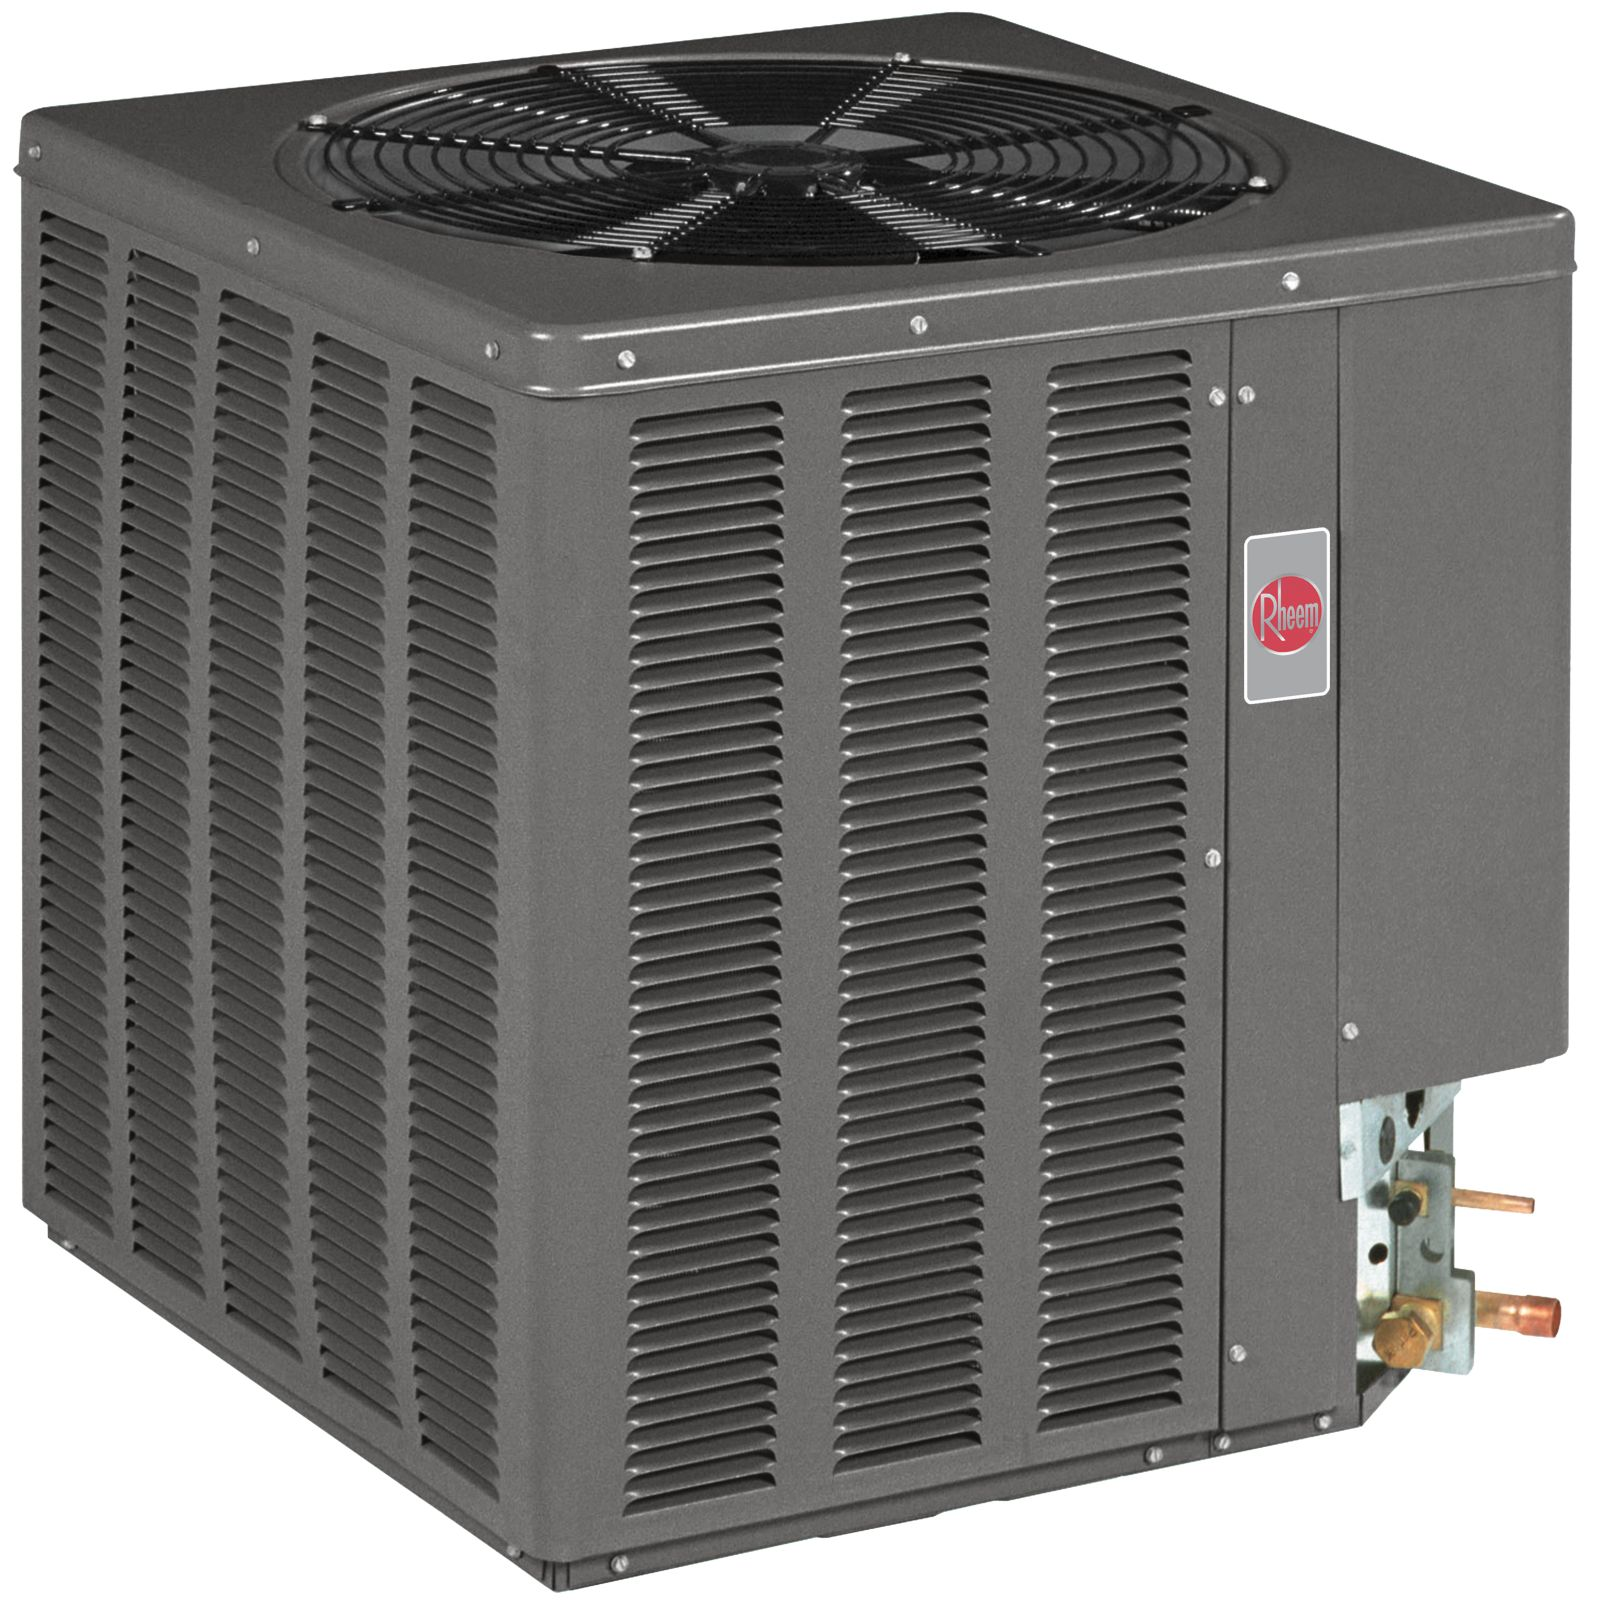 Rheem 14AJM60A01 - Value Series 5 Ton, 14 SEER, R410A Air Conditioner Condenser